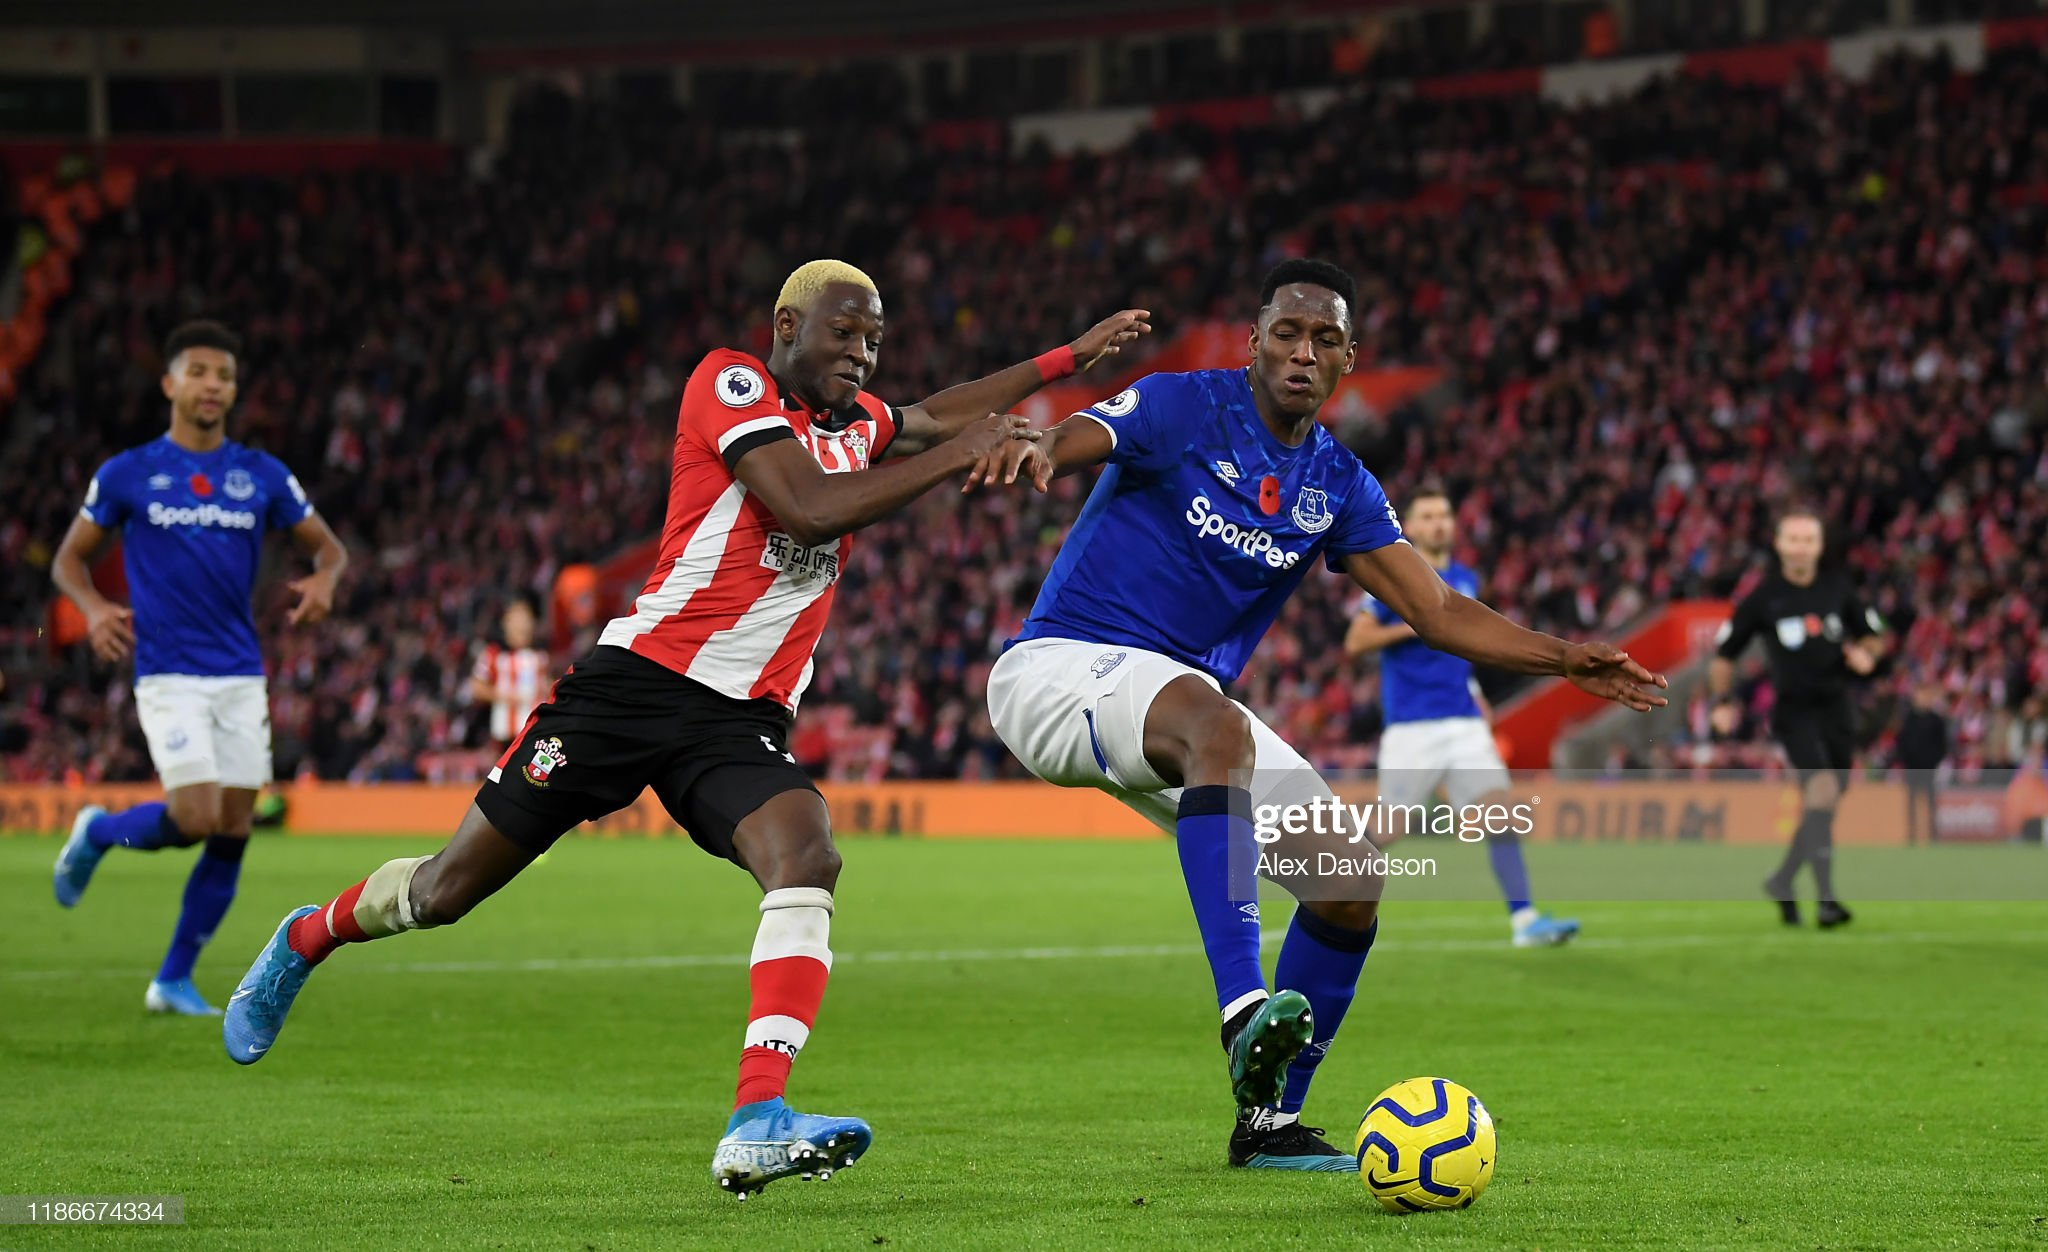 Everton vs Southampton Preview, prediction and odds